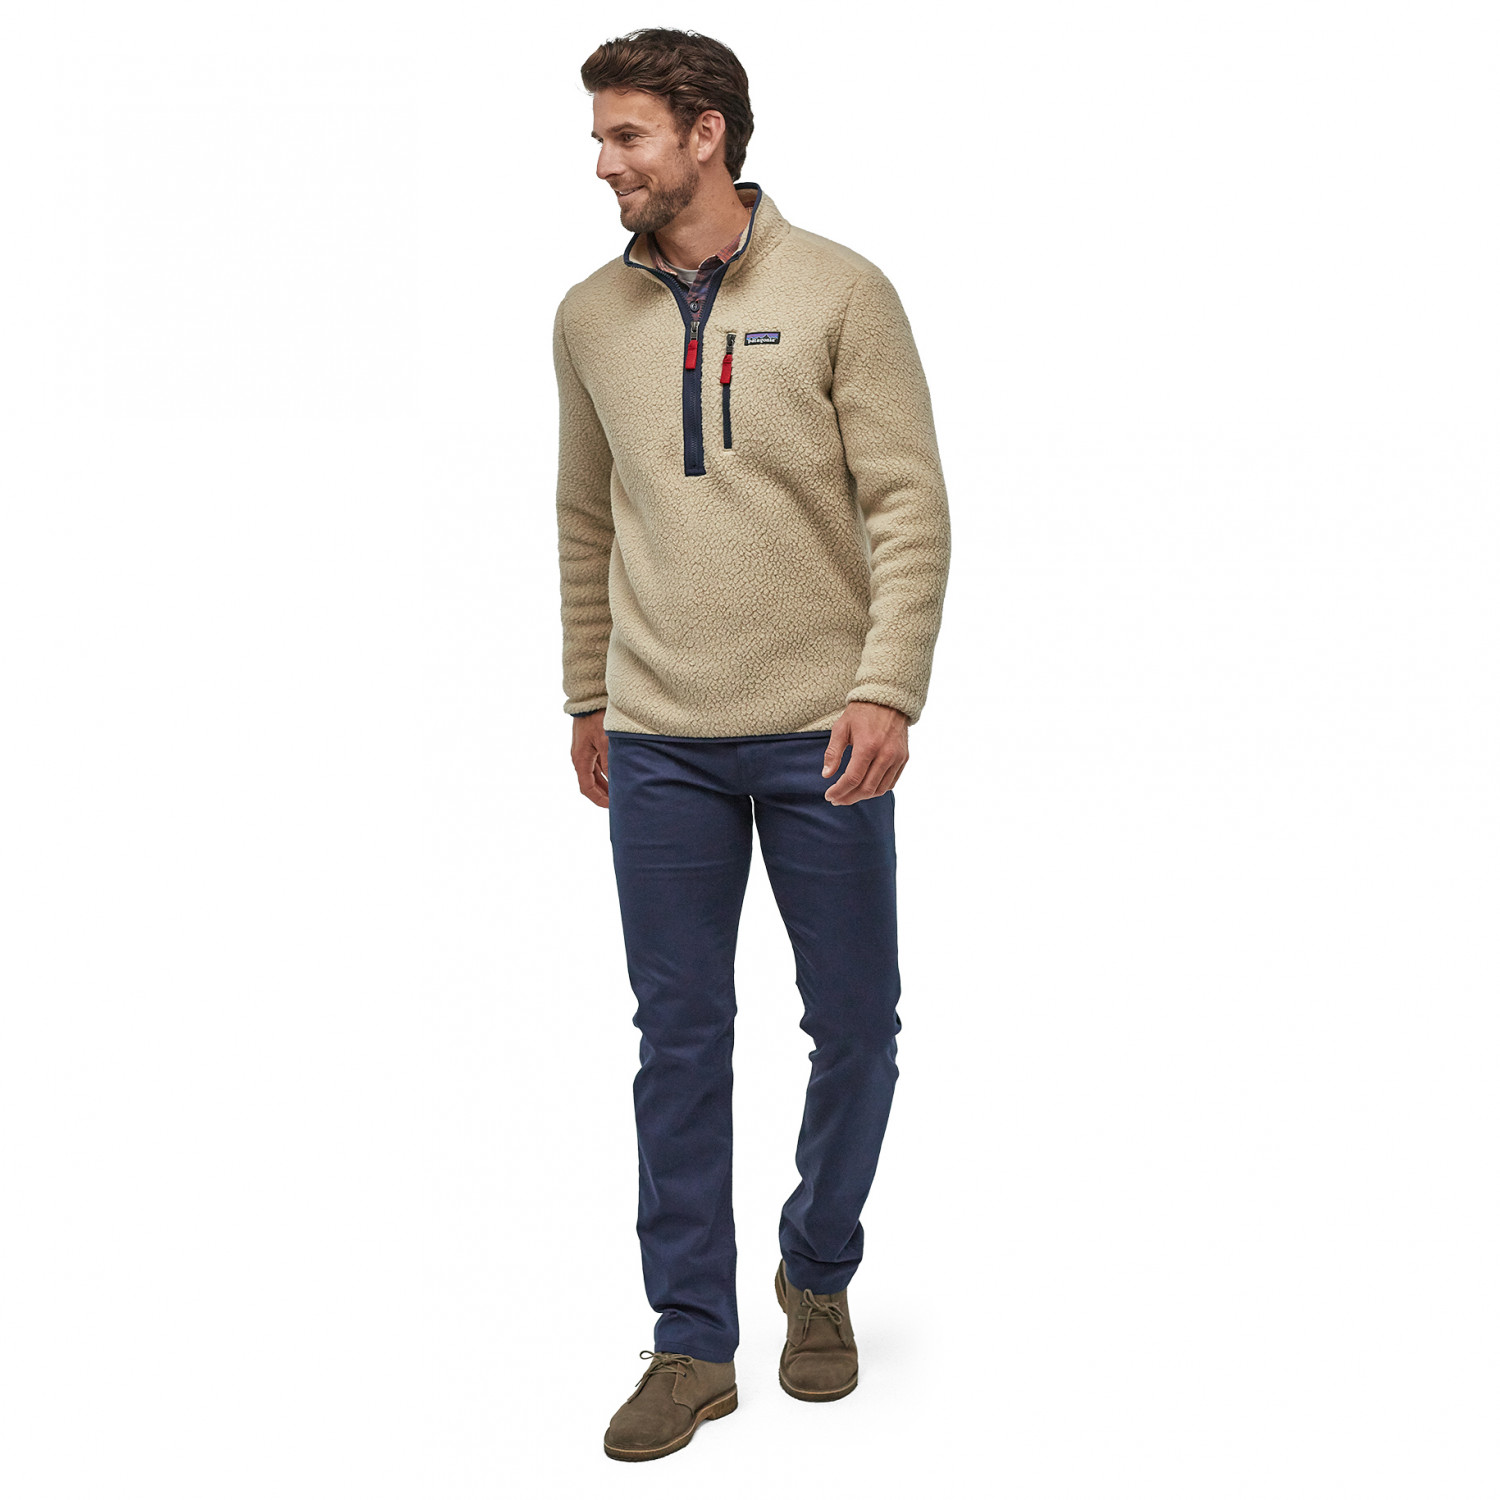 first rate new arrivals factory outlets Patagonia Retro Pile P/O - Fleece Jacket Men's | Free UK Delivery ...